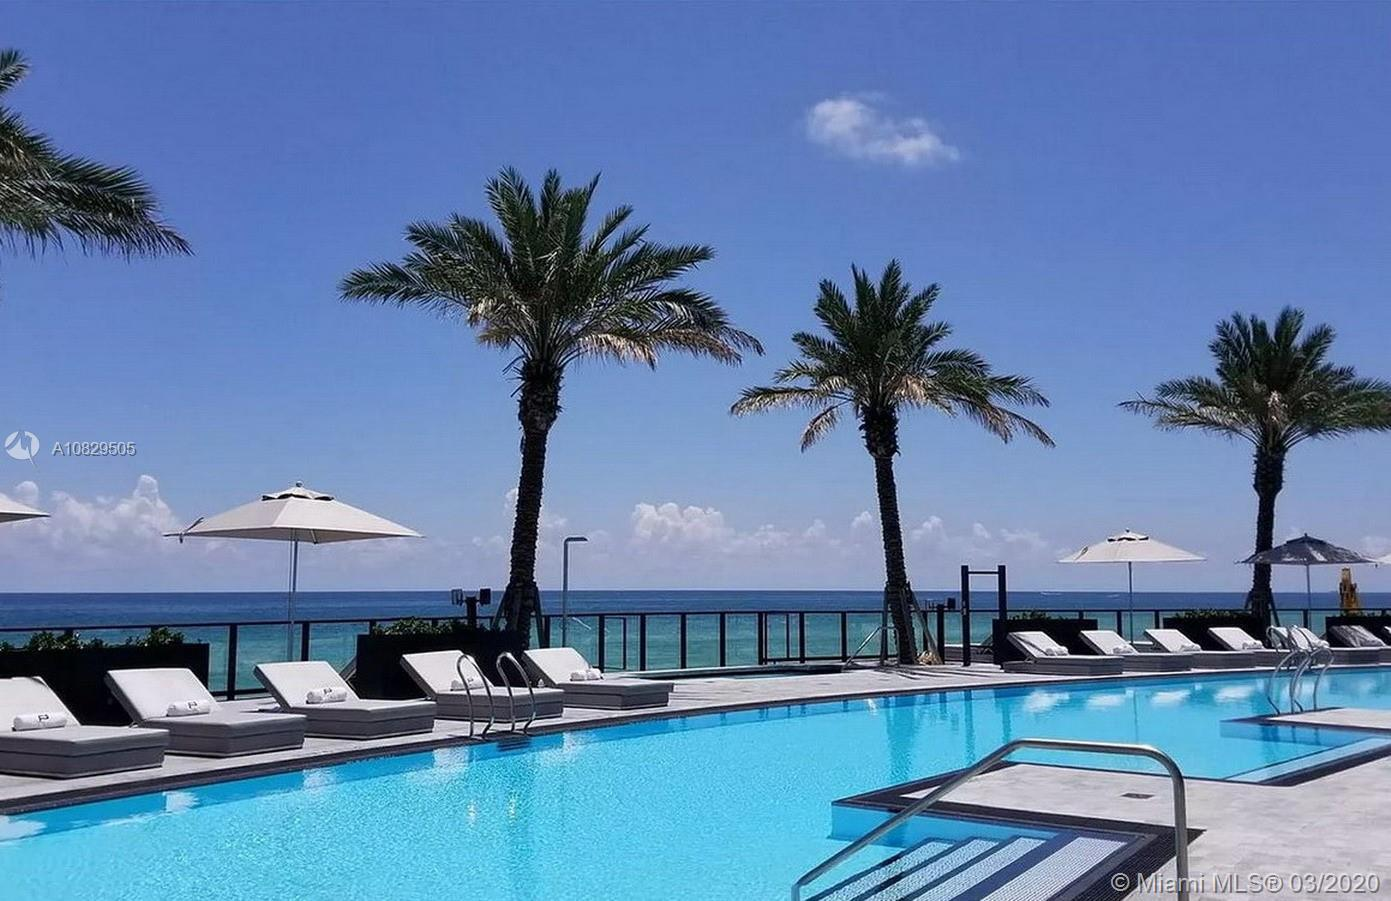 Exclusive move-in ready at The Porsche Design building, at Sunny Isles Beach community, Must see to